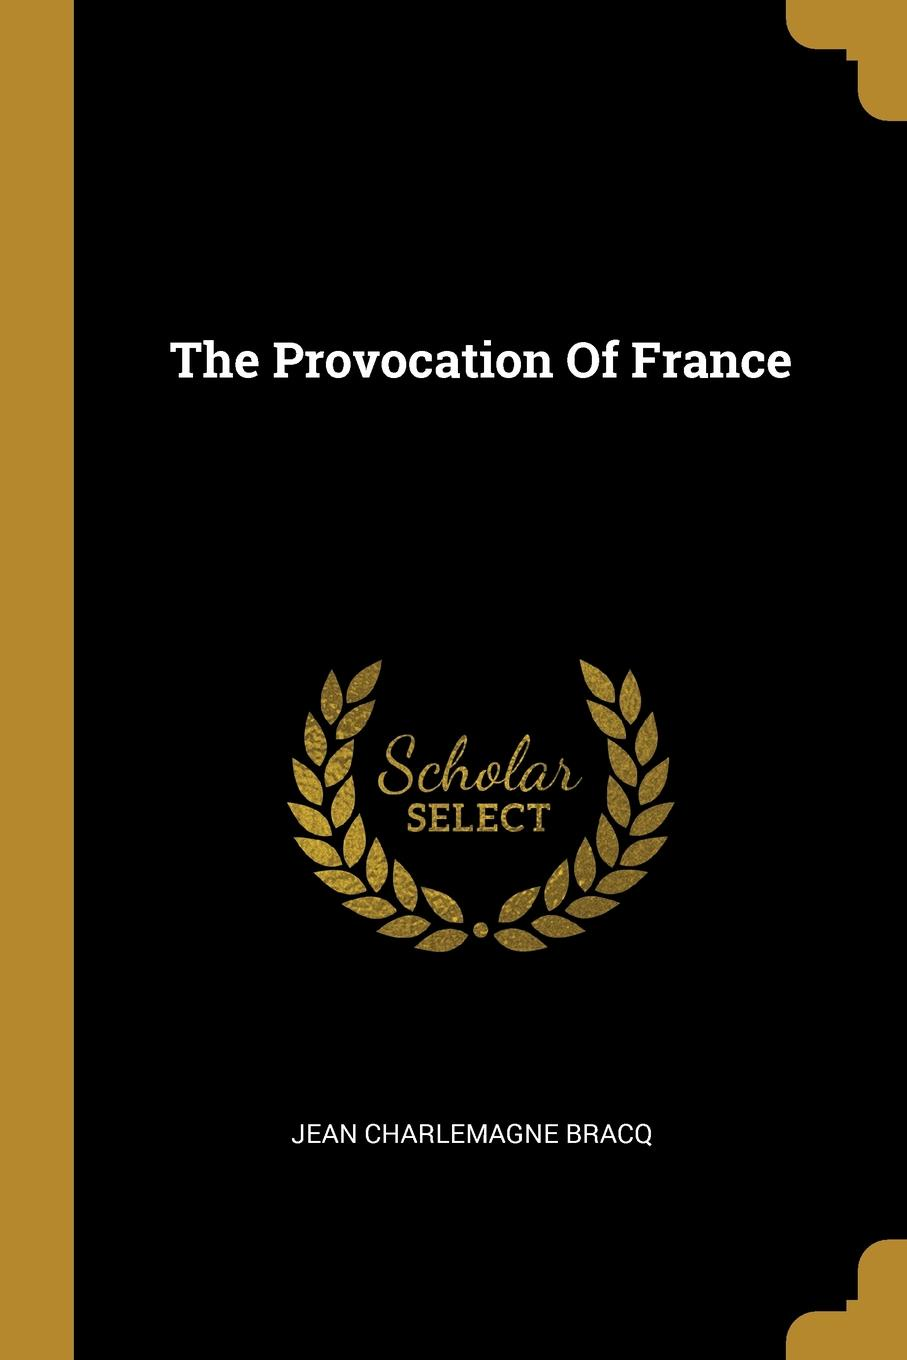 Jean Charlemagne Bracq. The Provocation Of France